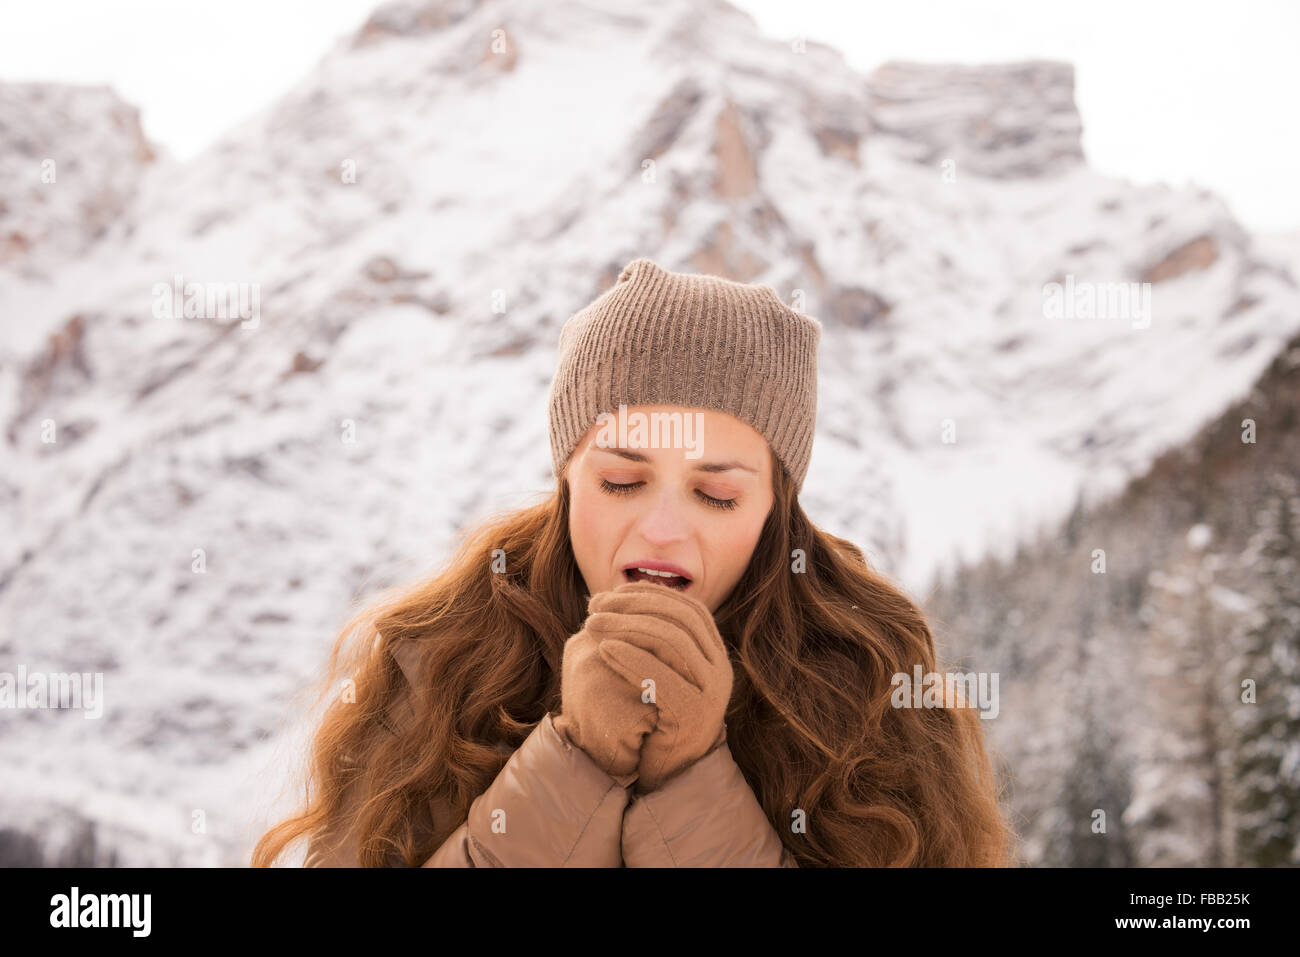 Energy-filling and exciting winter weekends in the mountains. Portrait of young woman warming hands with breathe - Stock Image